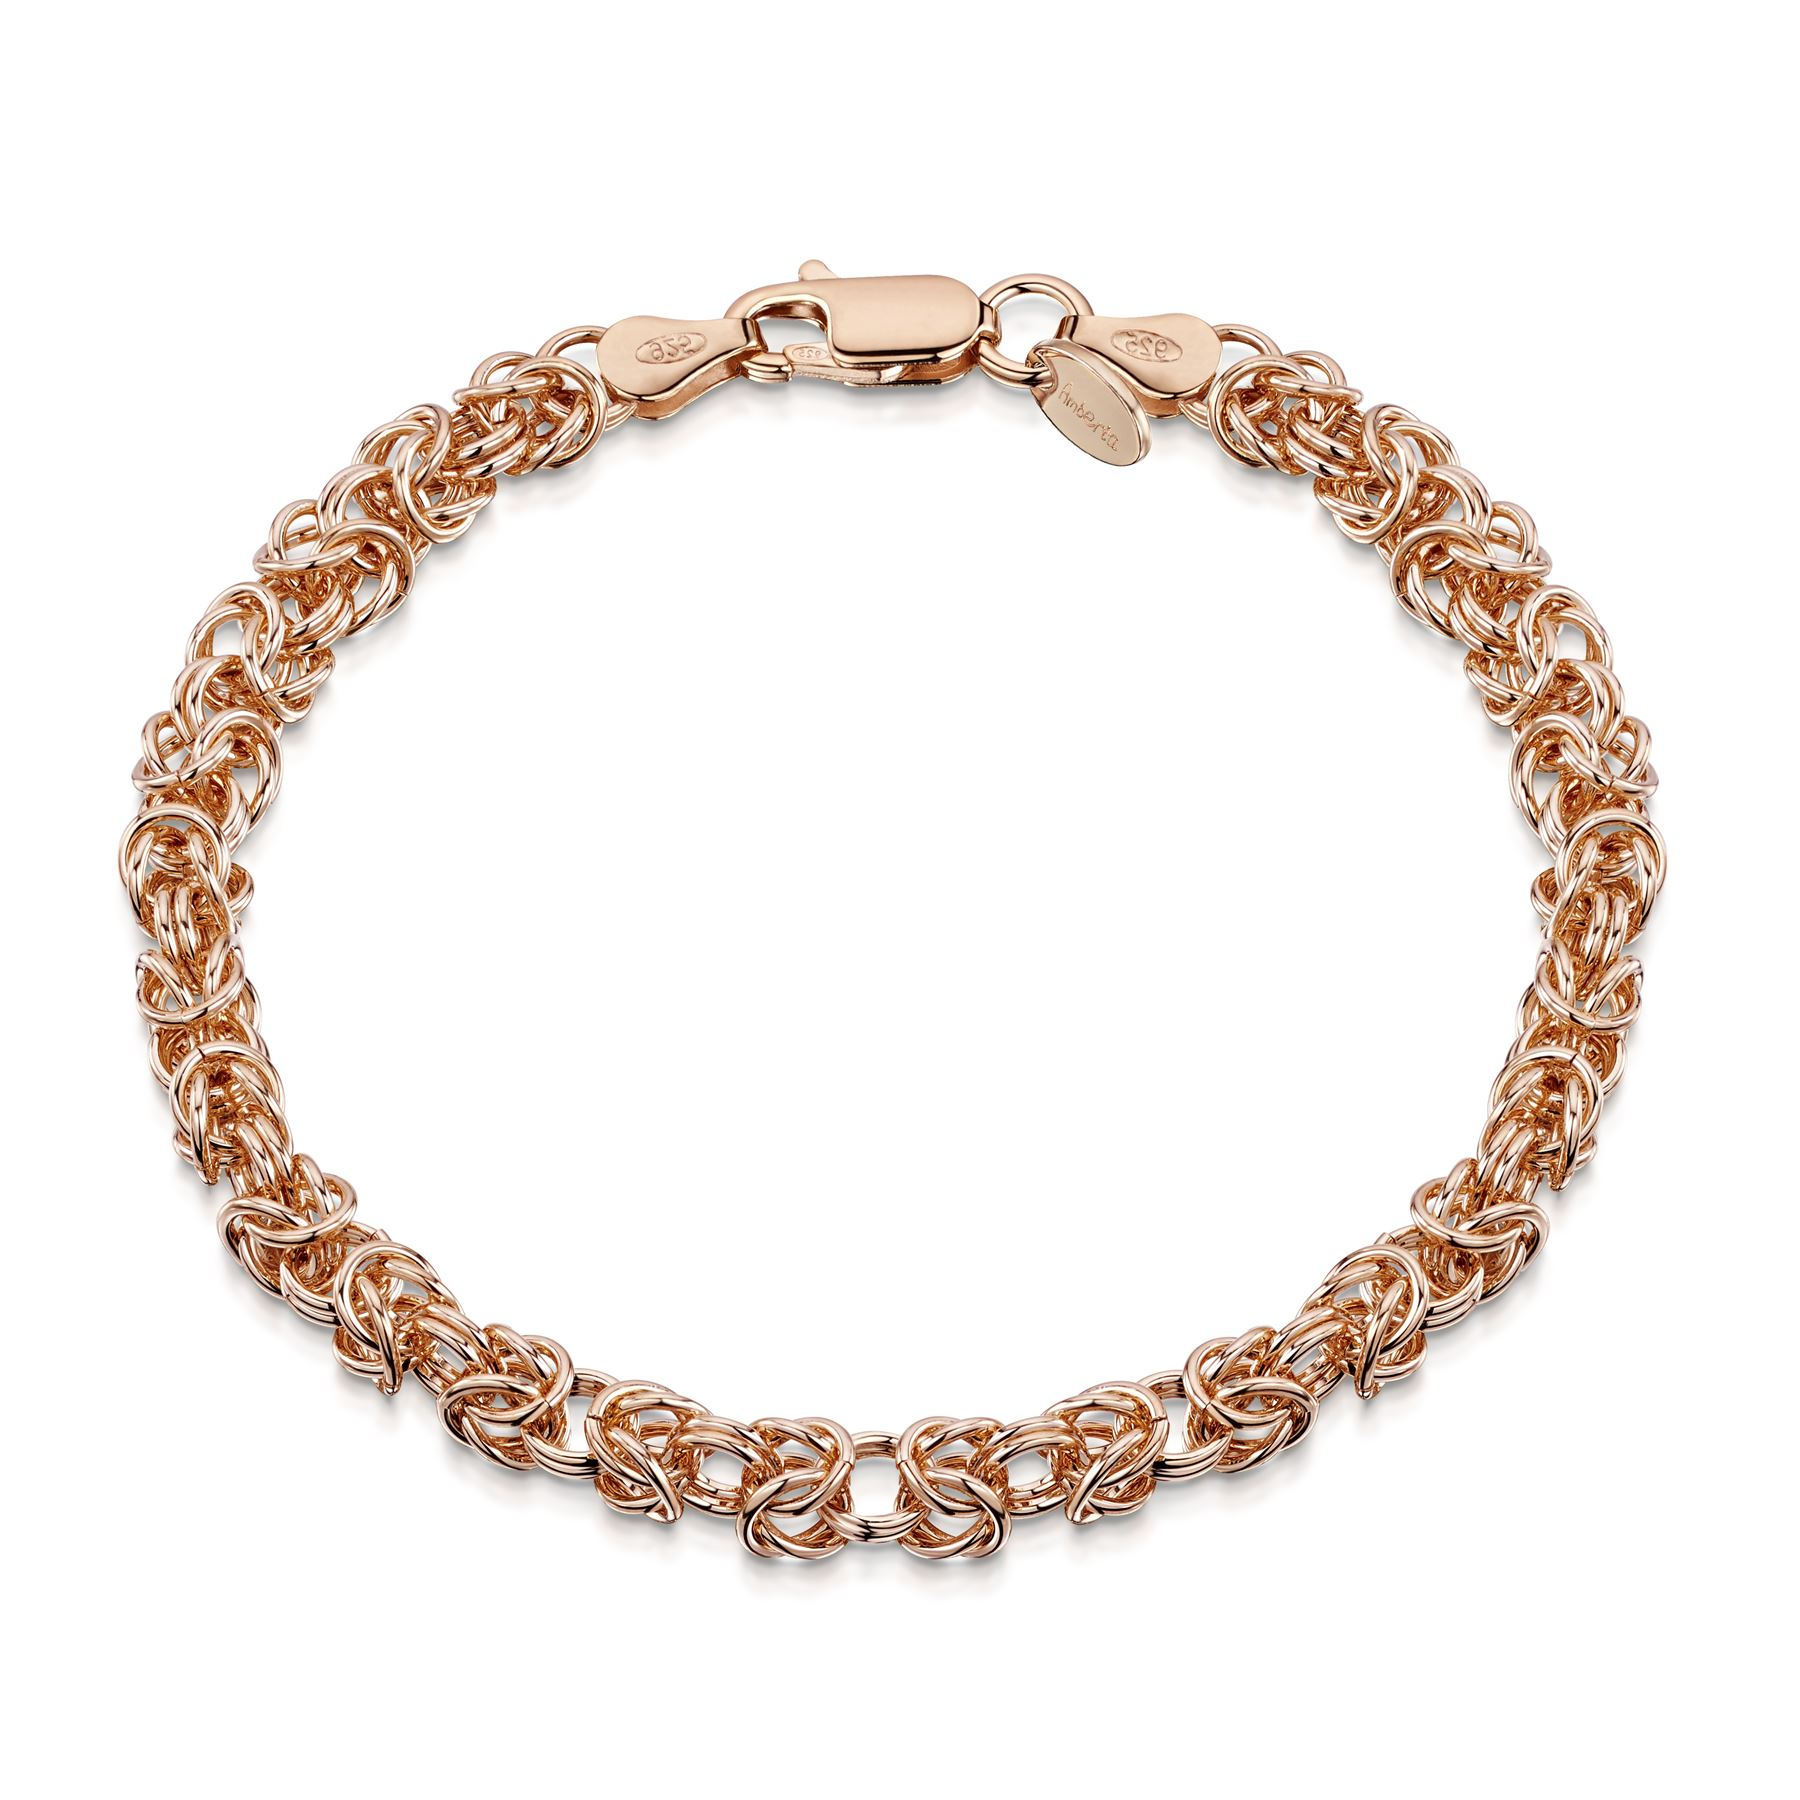 Amberta-Genuine-Real-925-Sterling-Silver-Chain-Bracelet-for-Women-from-Italy miniature 20